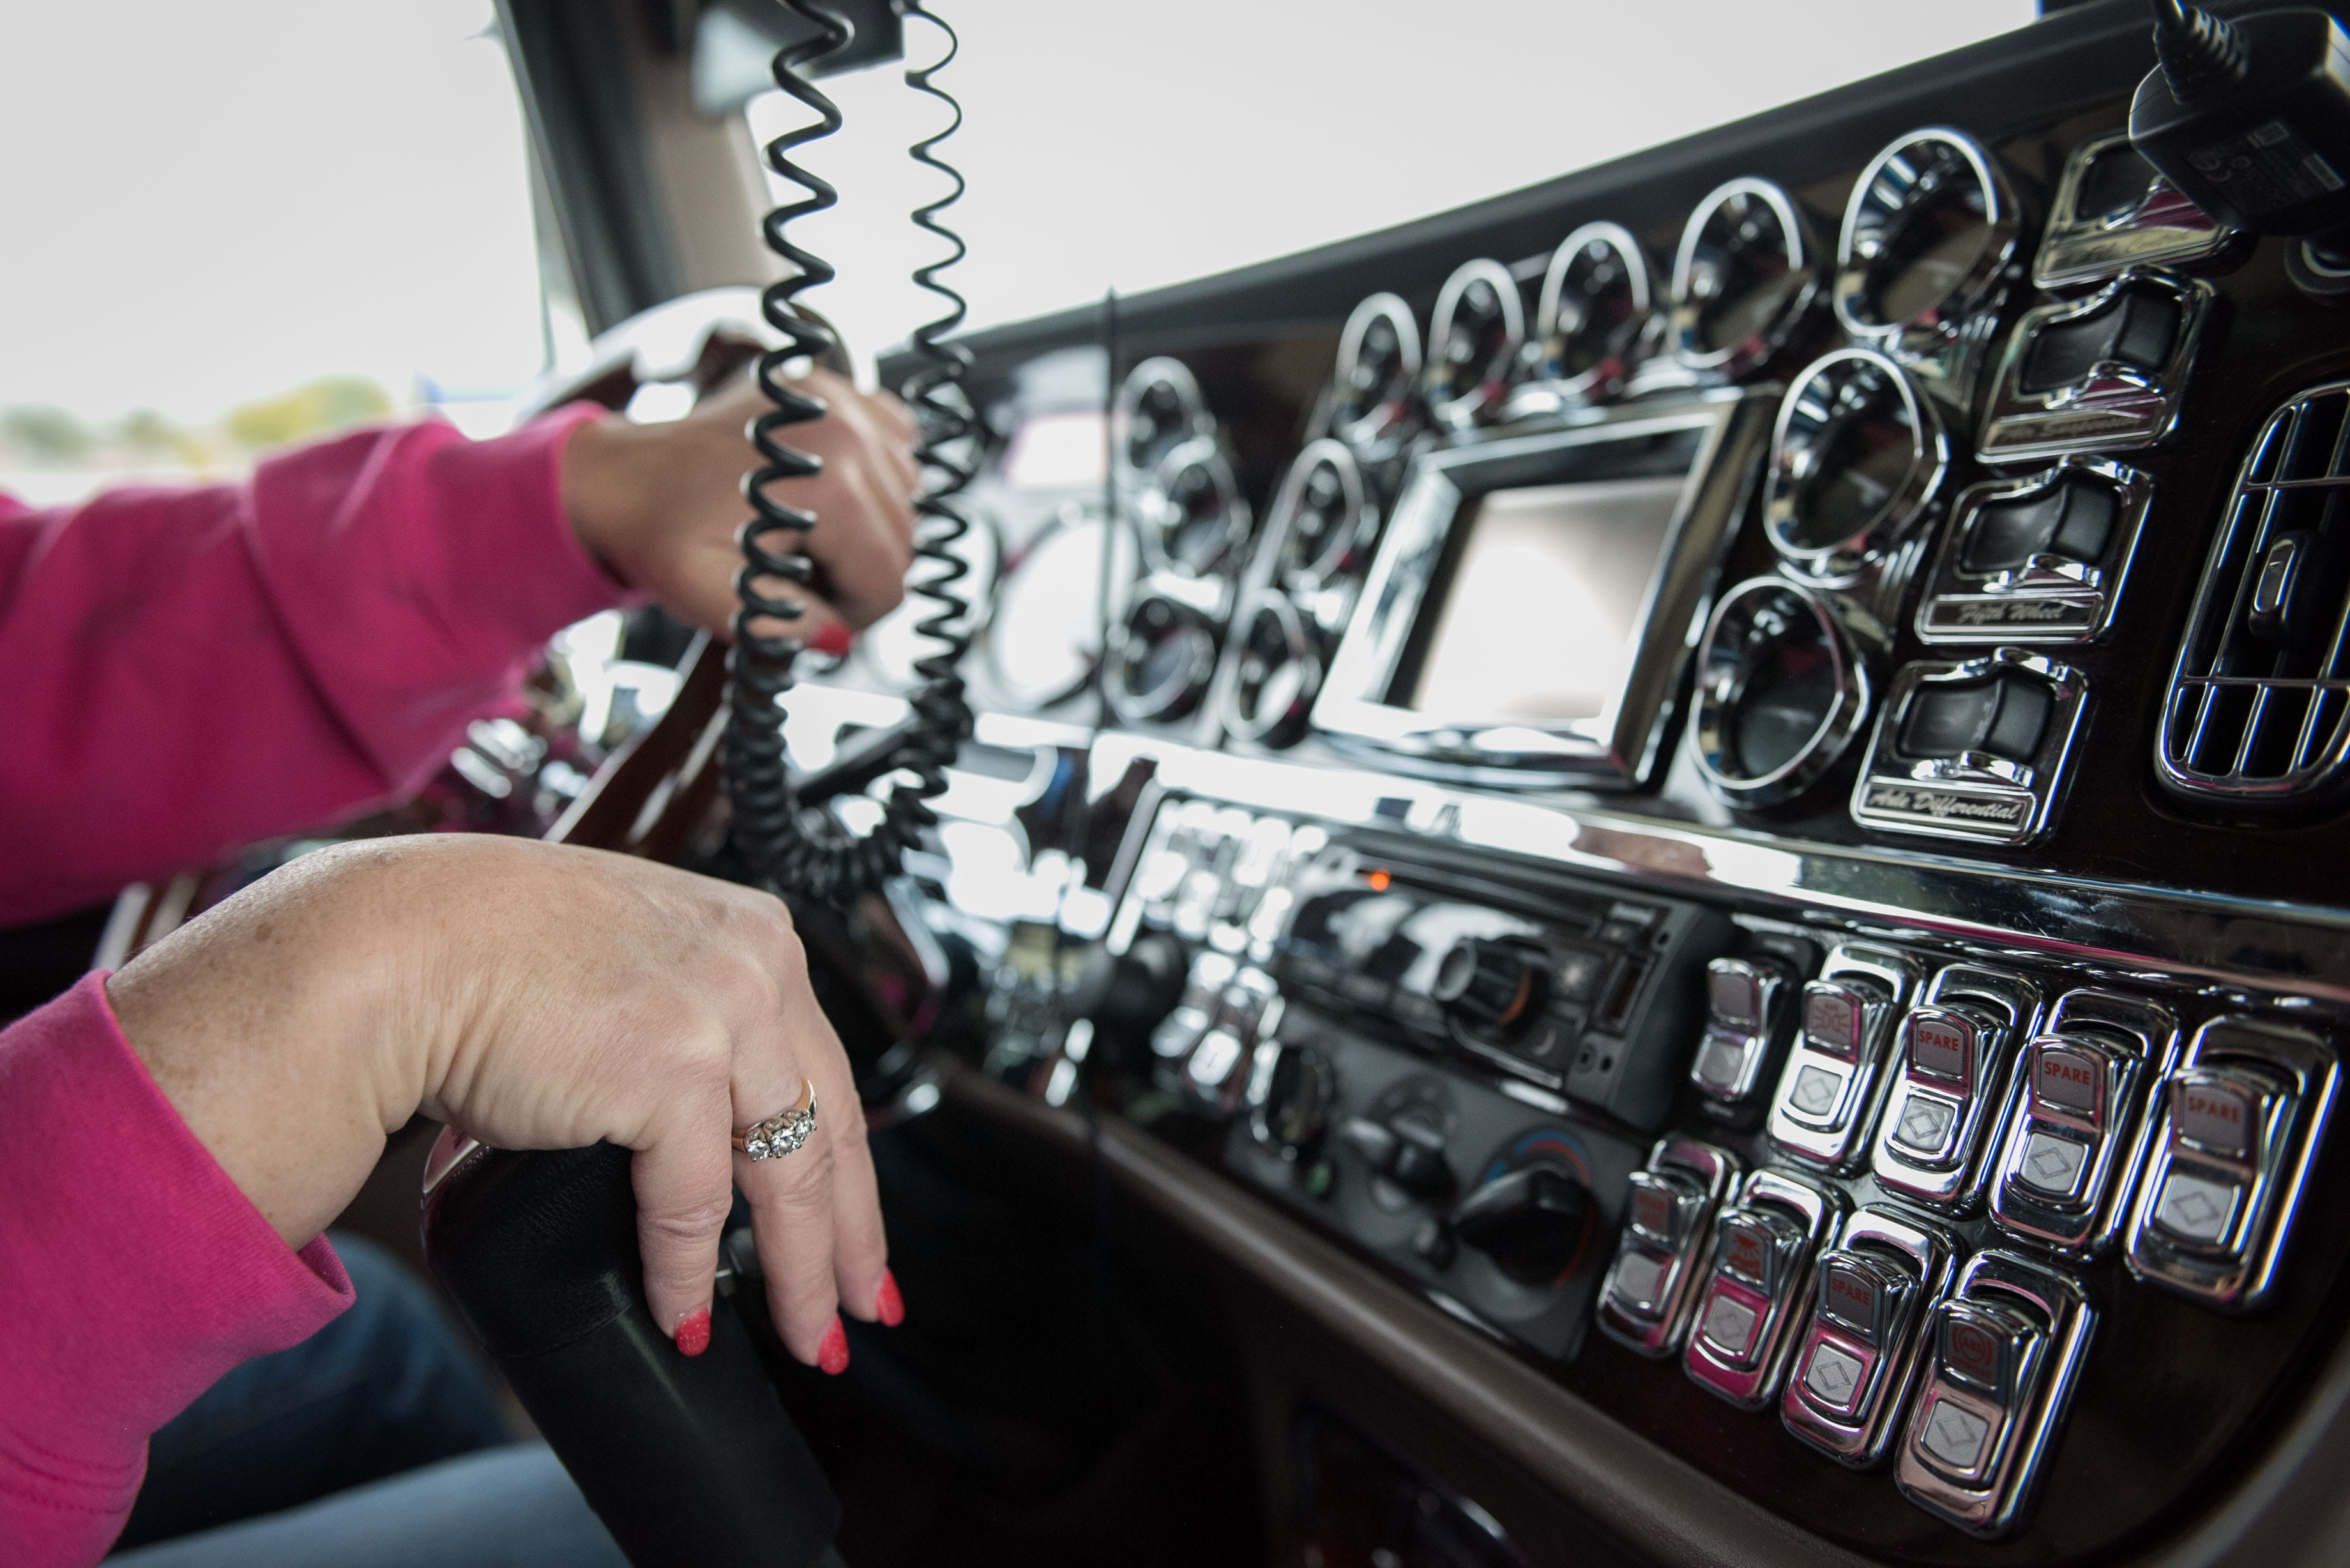 7b6599e09 Women are changing trucking, 'my steering wheel has no clue what gender  holds it